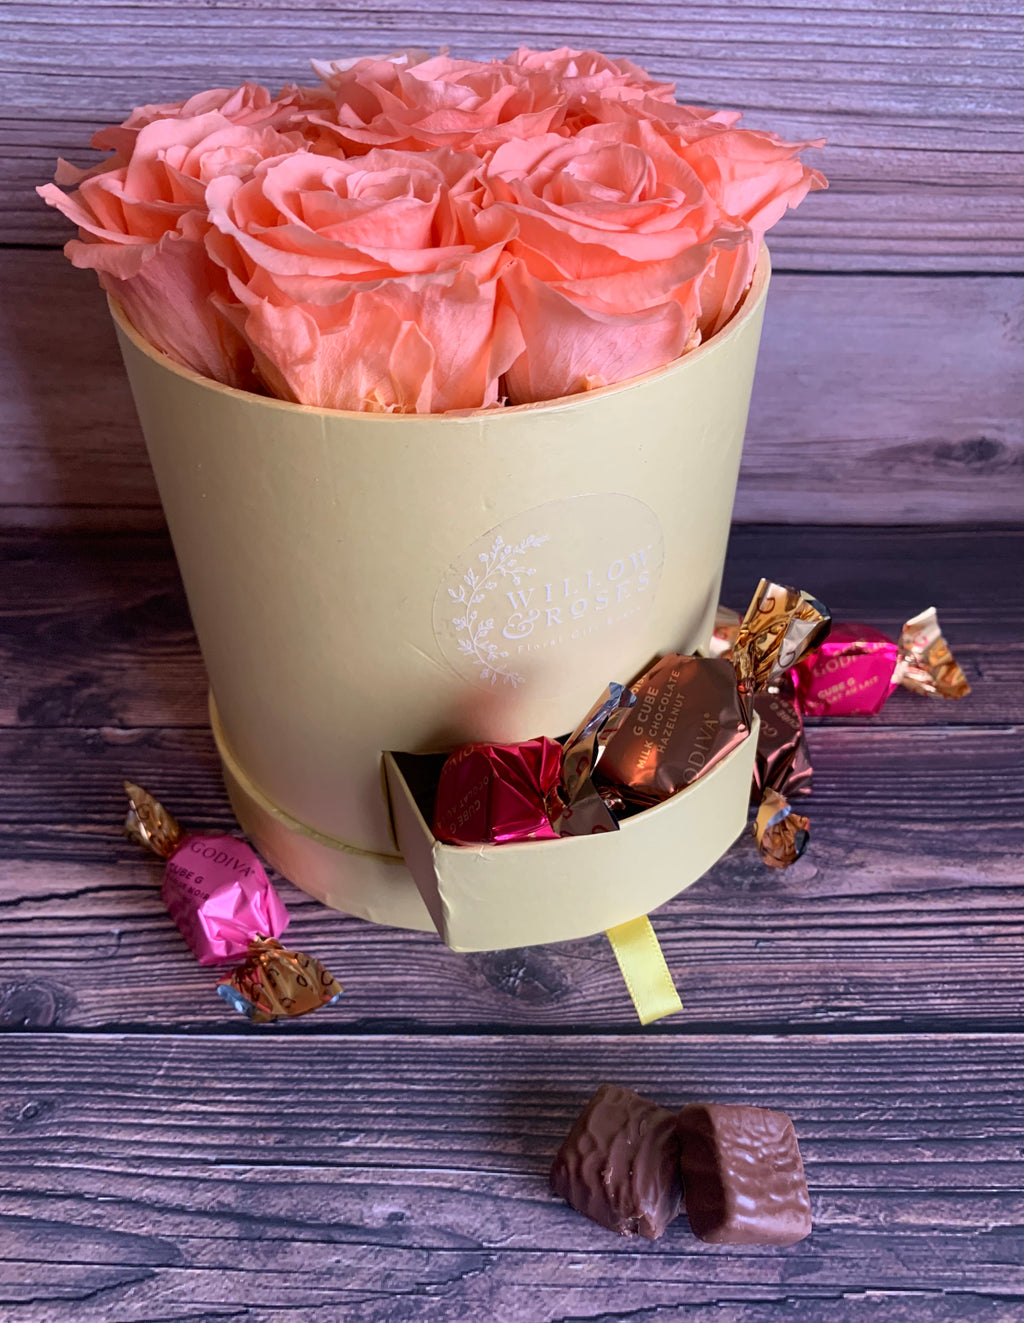 PEACH ROSES IN A FLORAL GIFT BOX